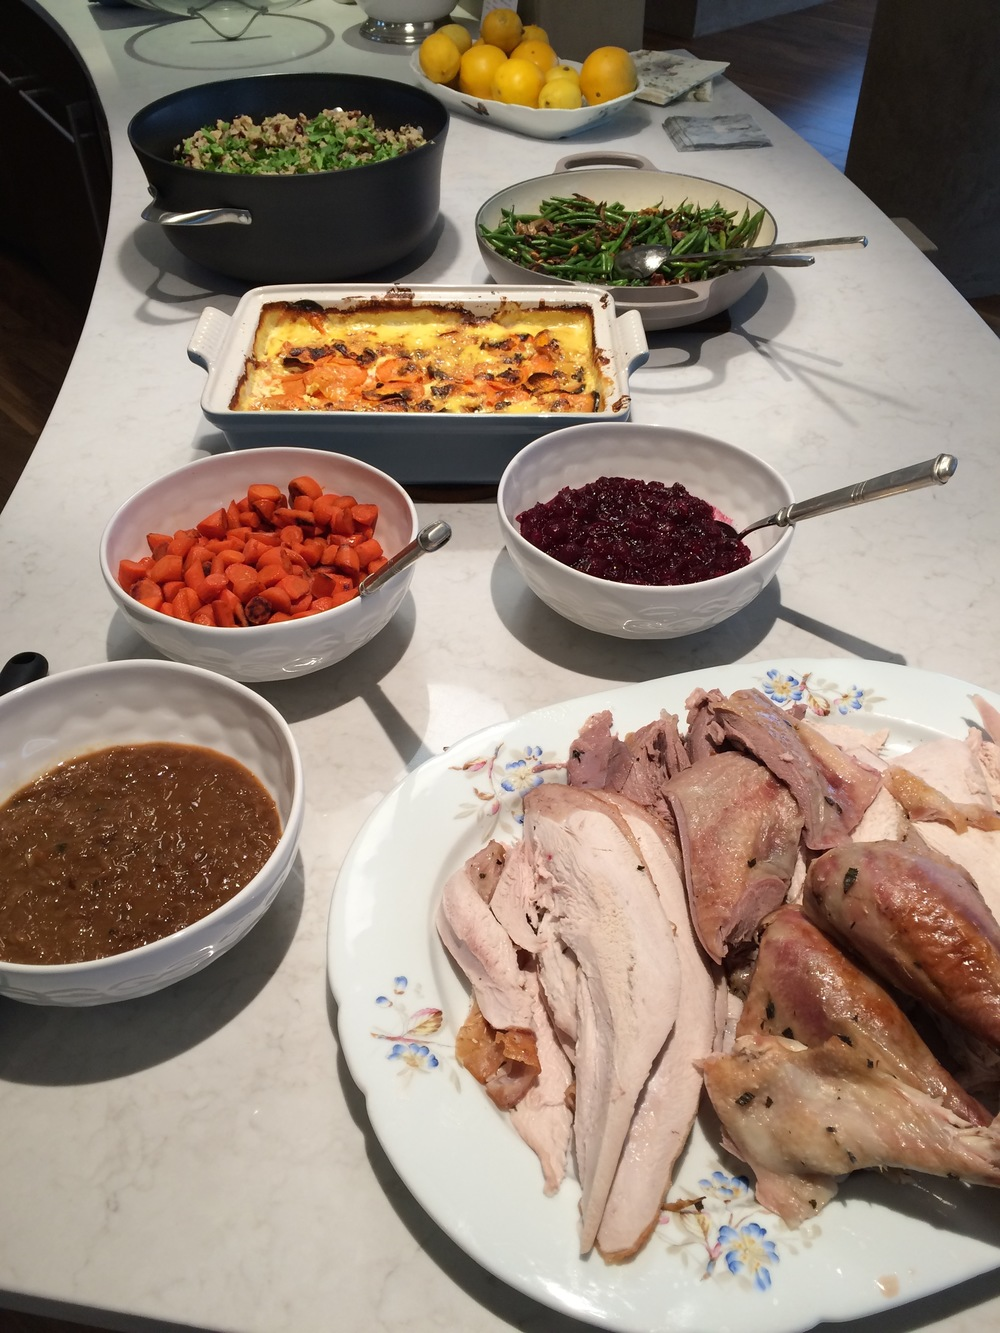 Thanksgiving with ALL the fixins